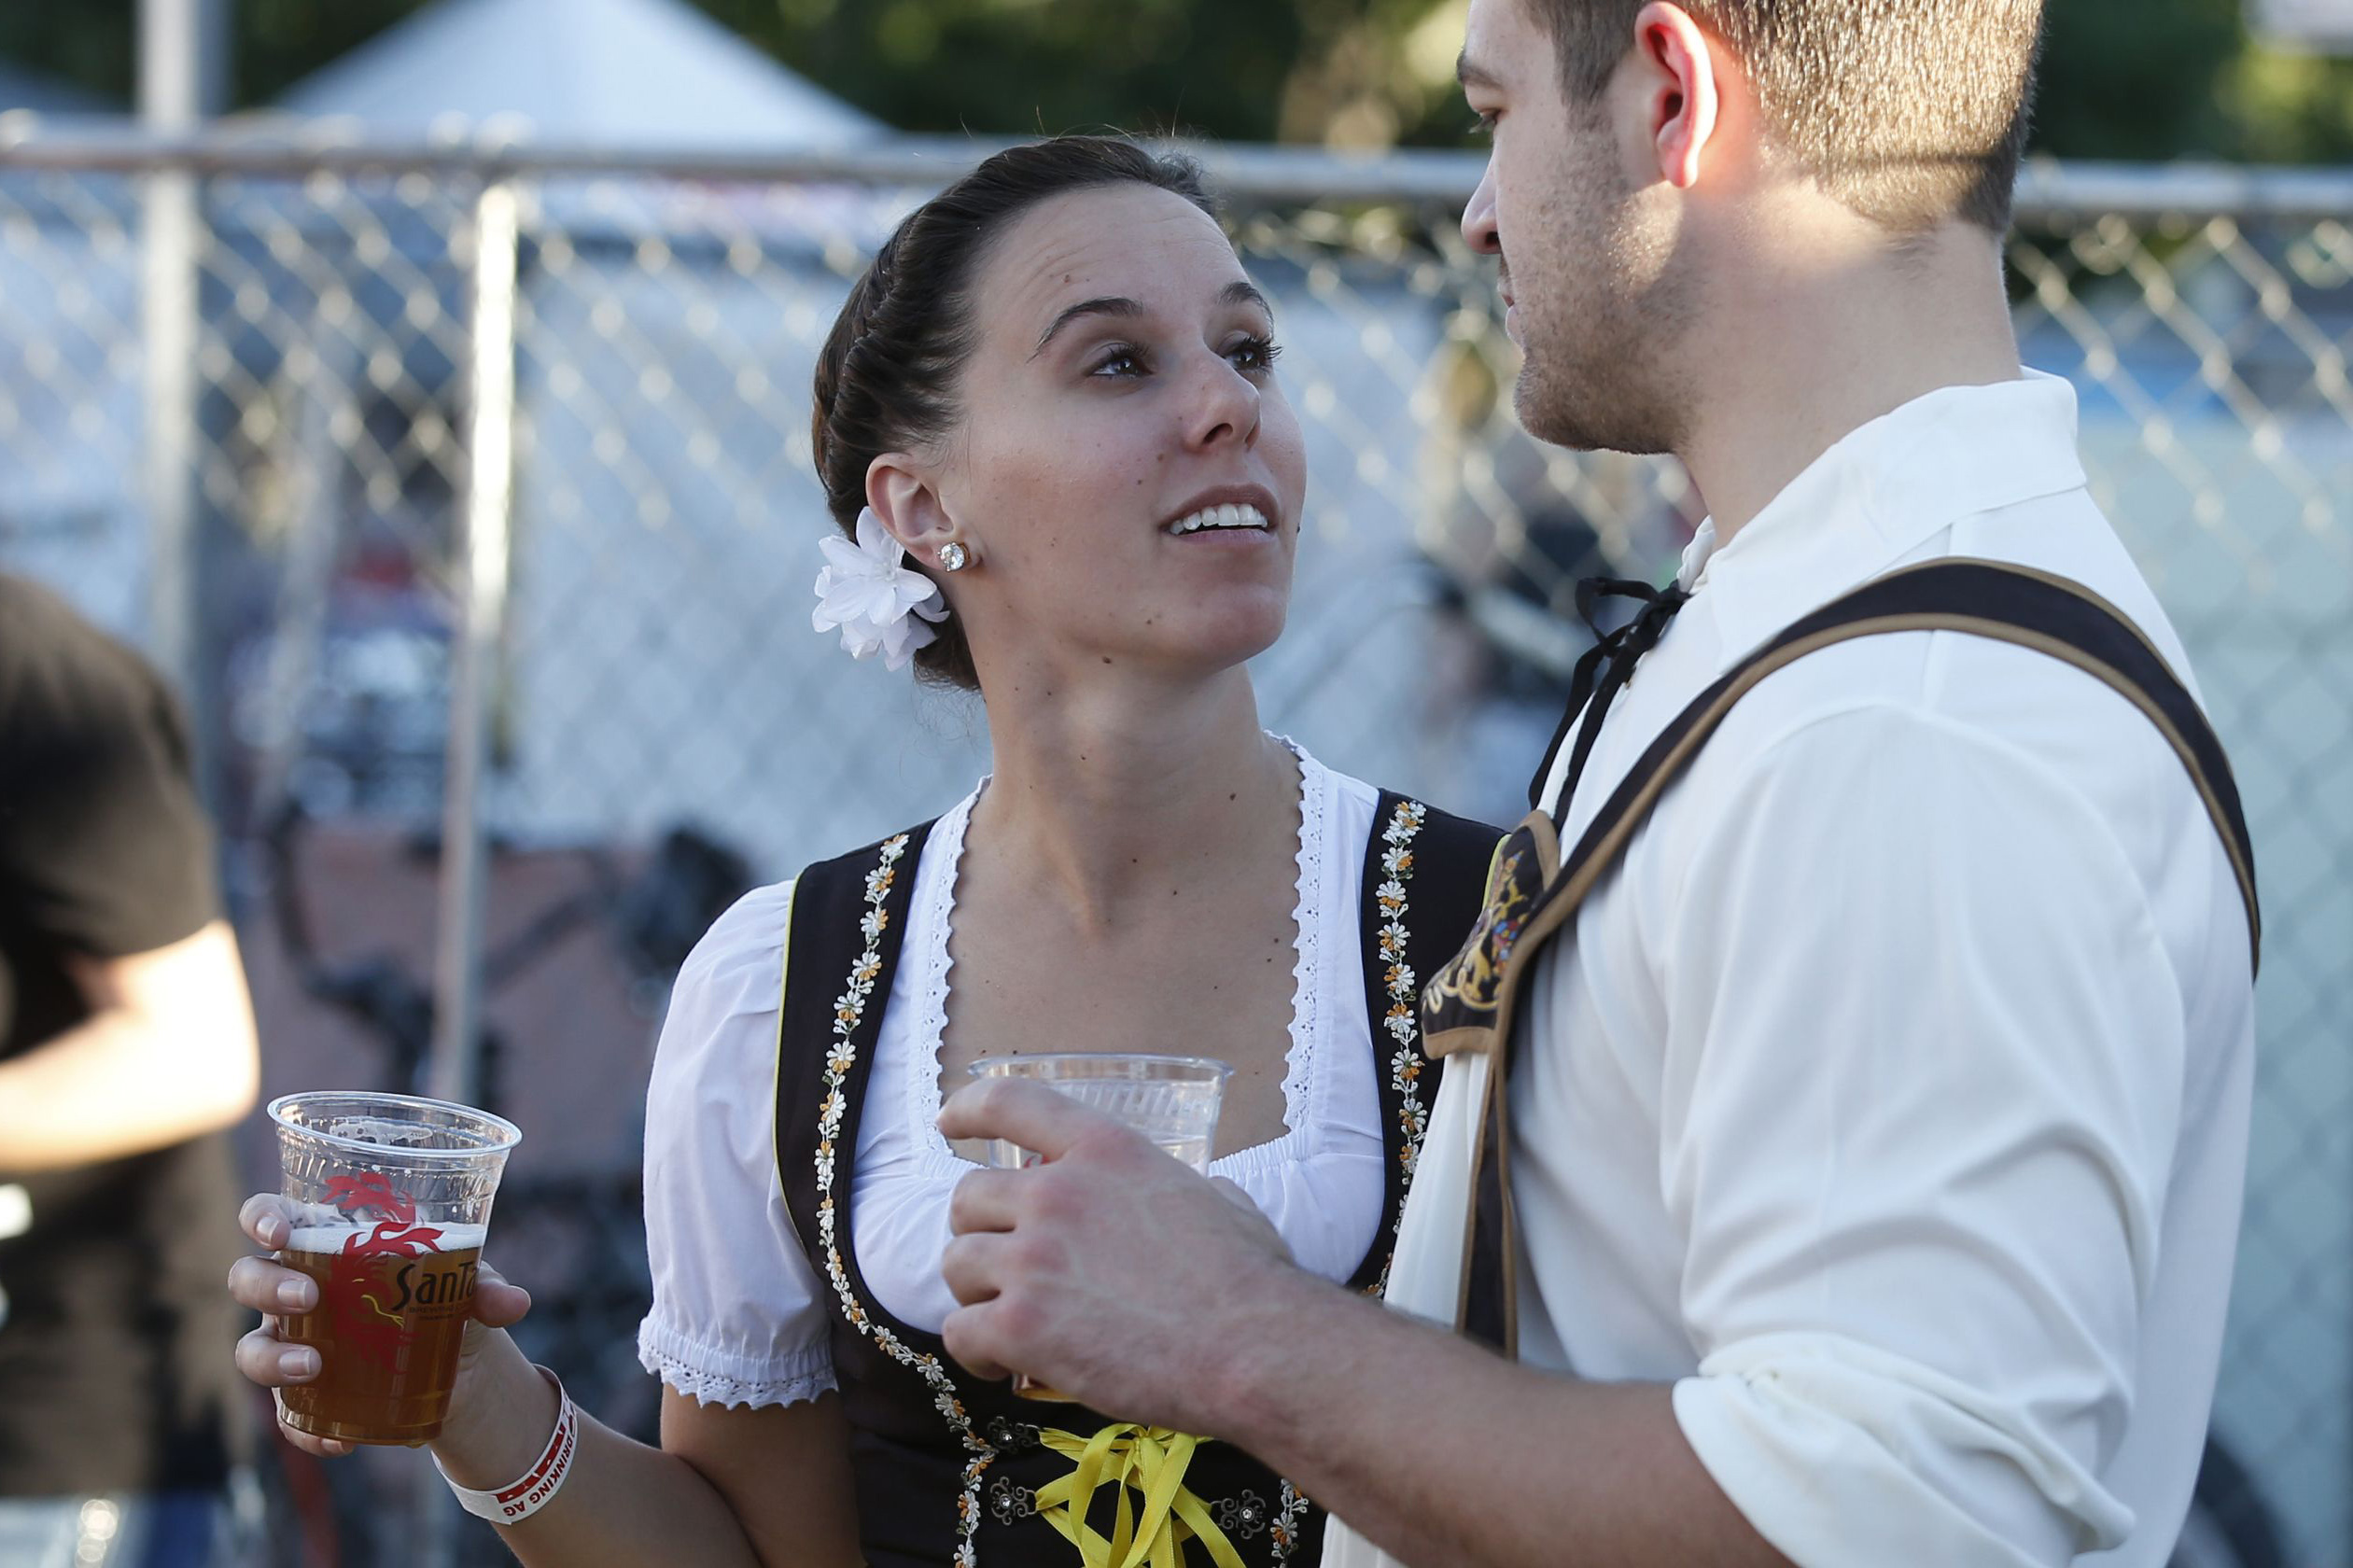 What Would An October Be Without Oktoberfest For 3 Days Tempe Beach Park Will Saturated All Things German Beer Brats Sauer My Fave